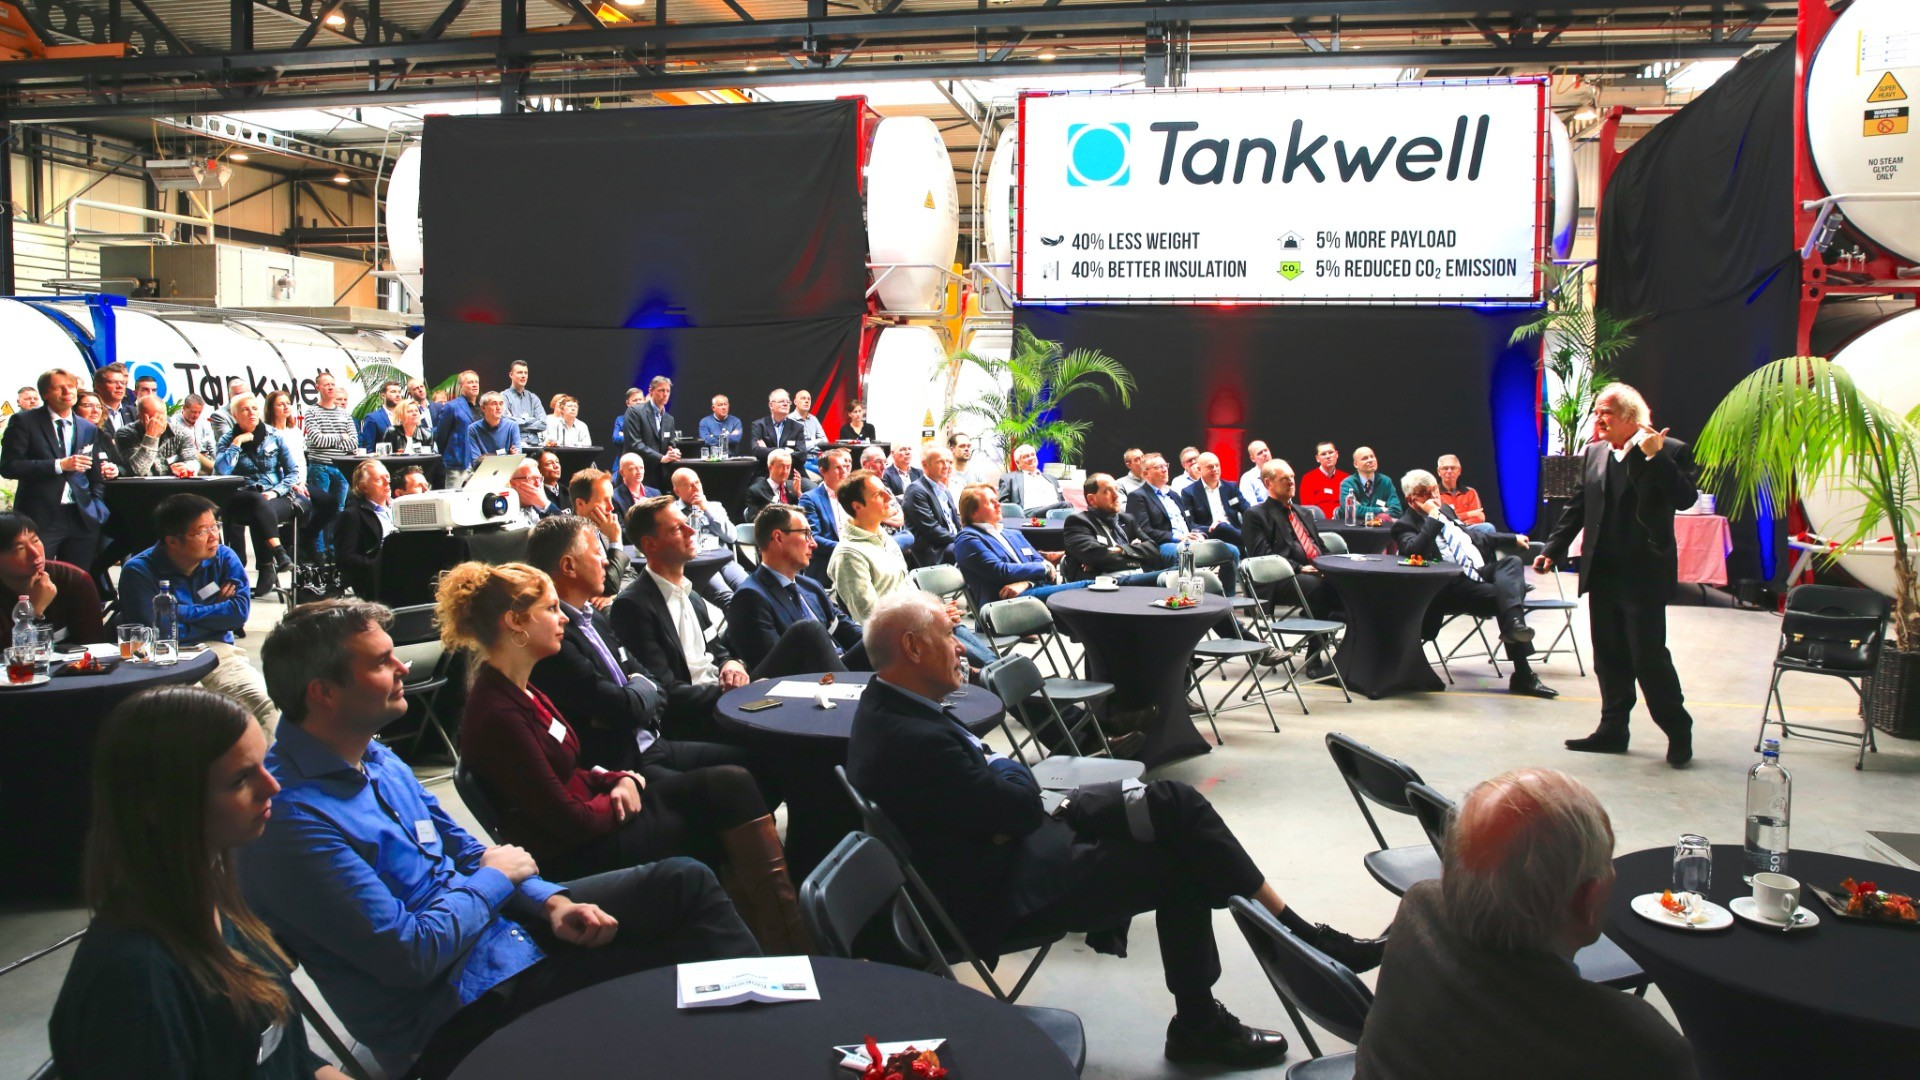 Opening of new Tankwell facility